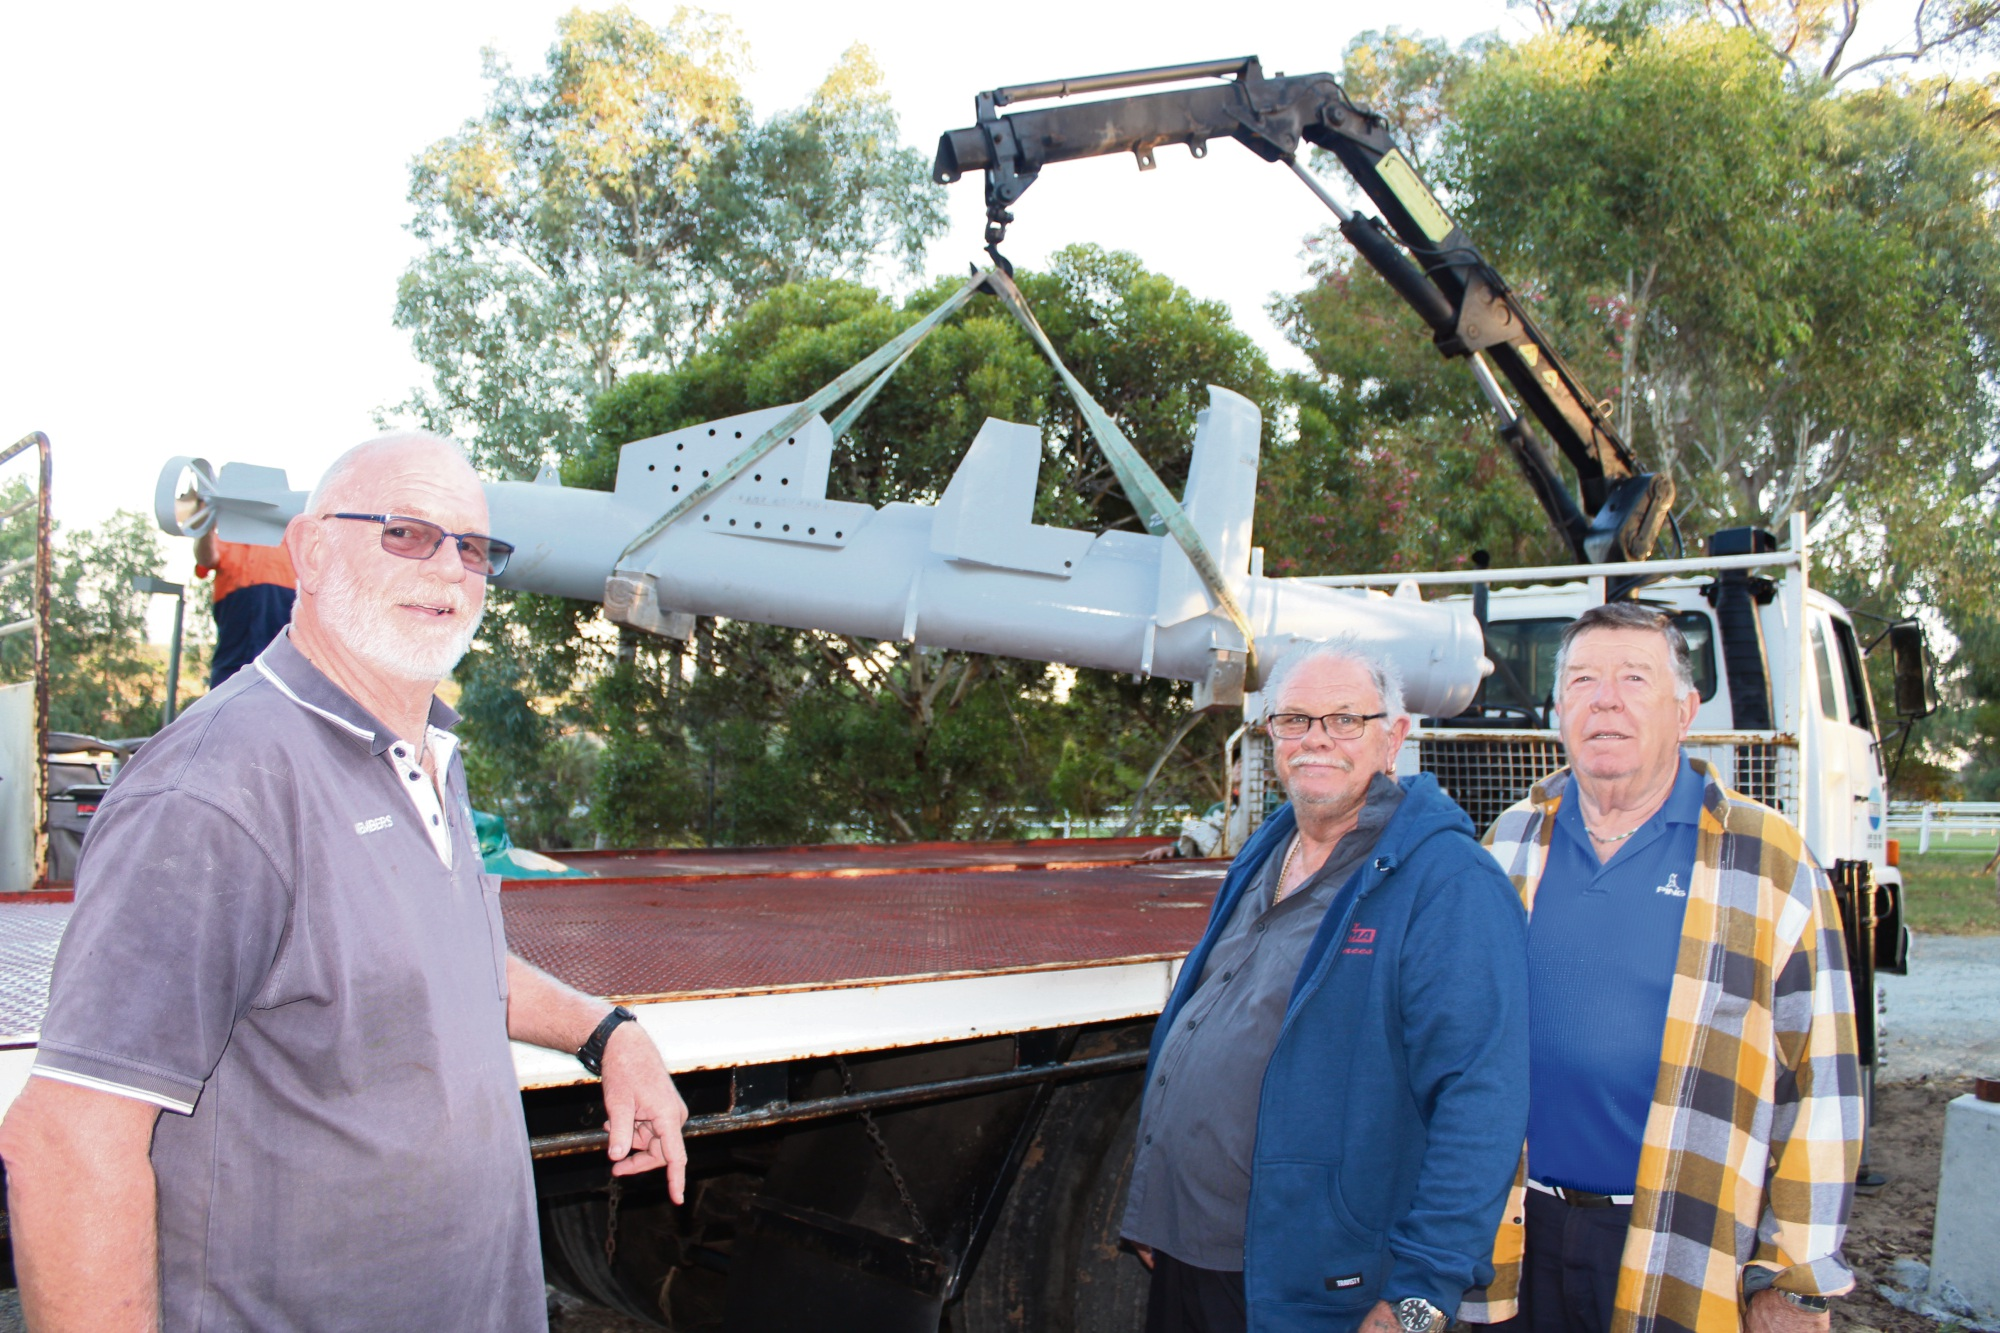 Baldivis: replica mini sub to be unveiled at Totally and Partially Disabled Veterans Club of WA on Anzac Day